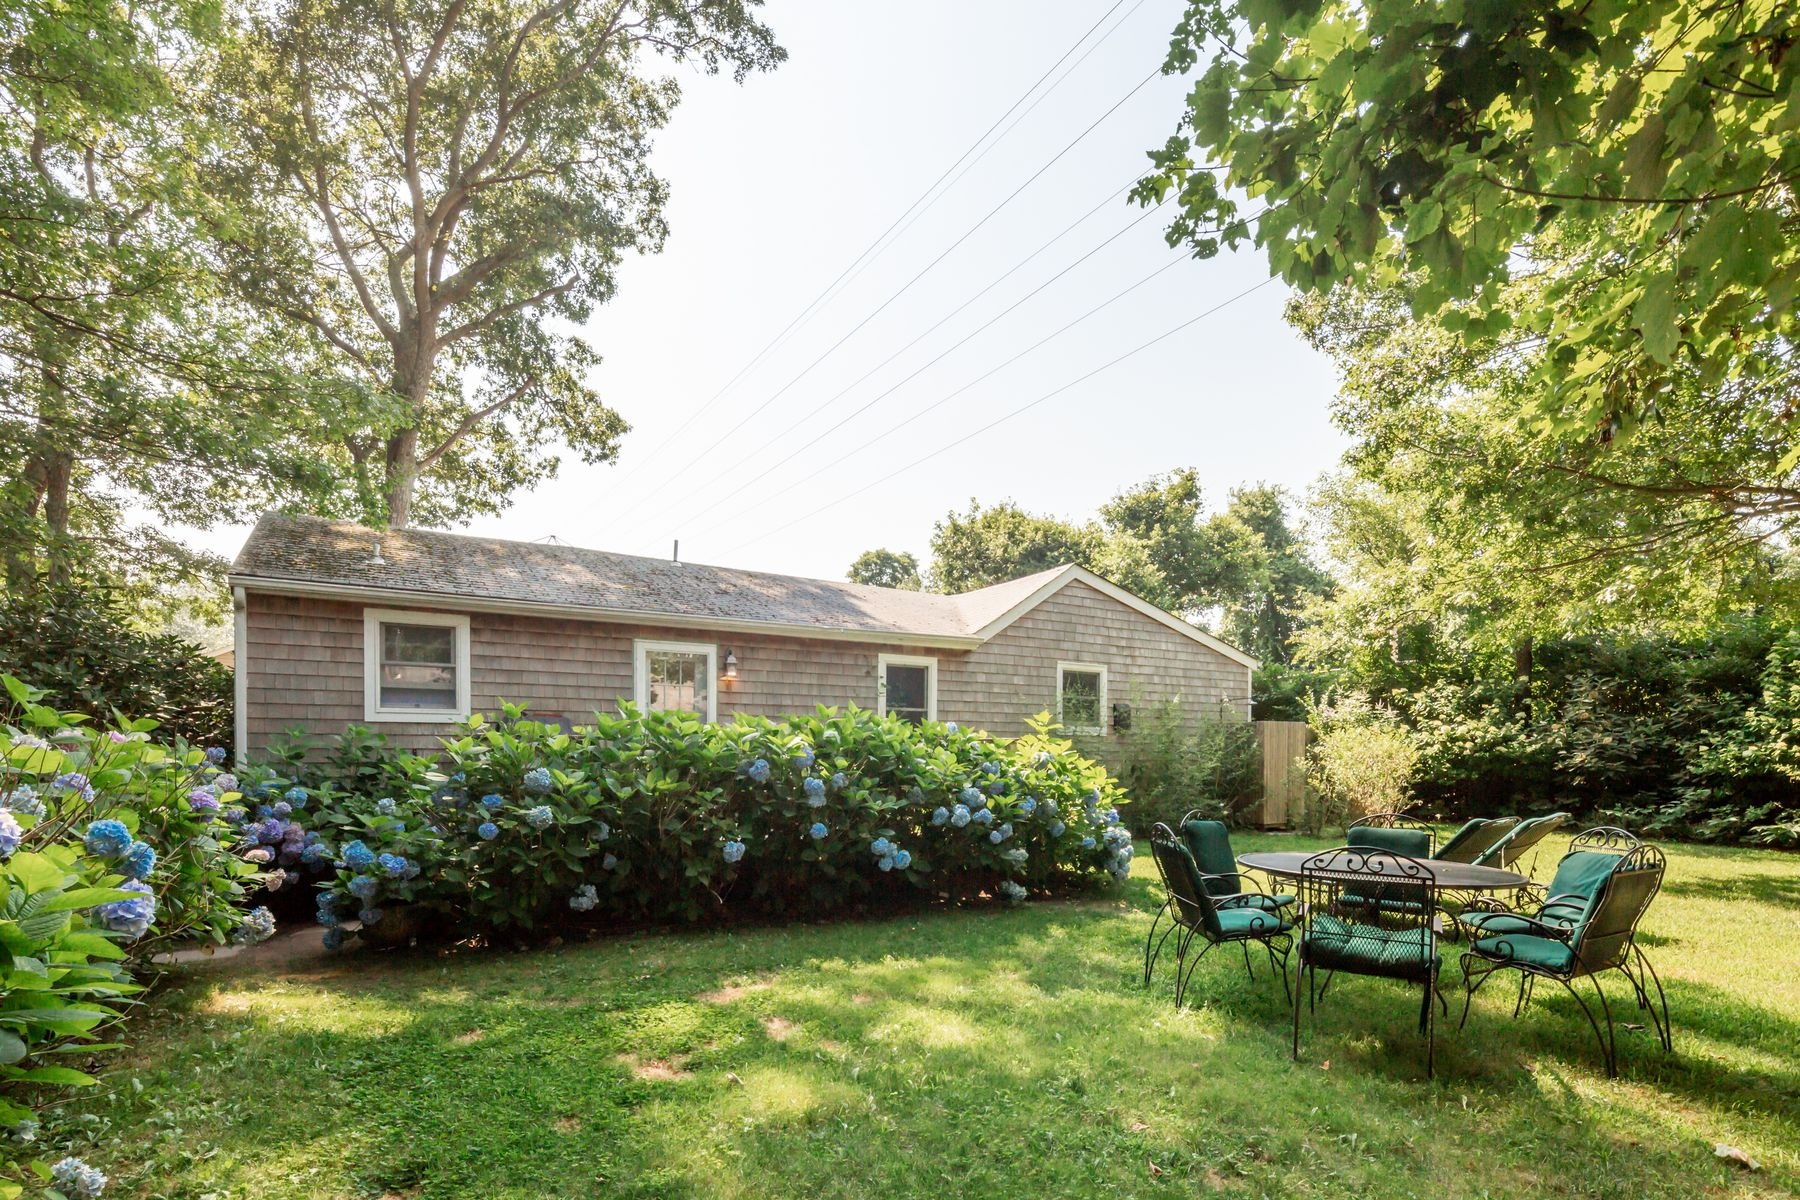 Single Family Homes for Active at Charming Amagansett Pied-A-Terre 30 Grove Street Amagansett, New York 11930 United States